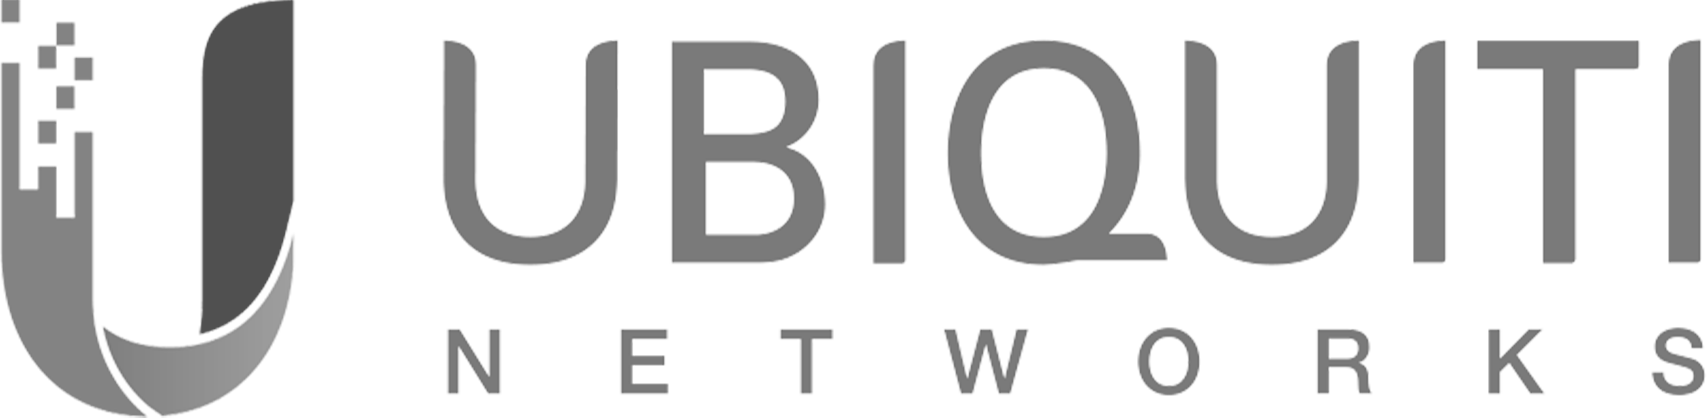 Ubiquiti Networks logo shown in black and white